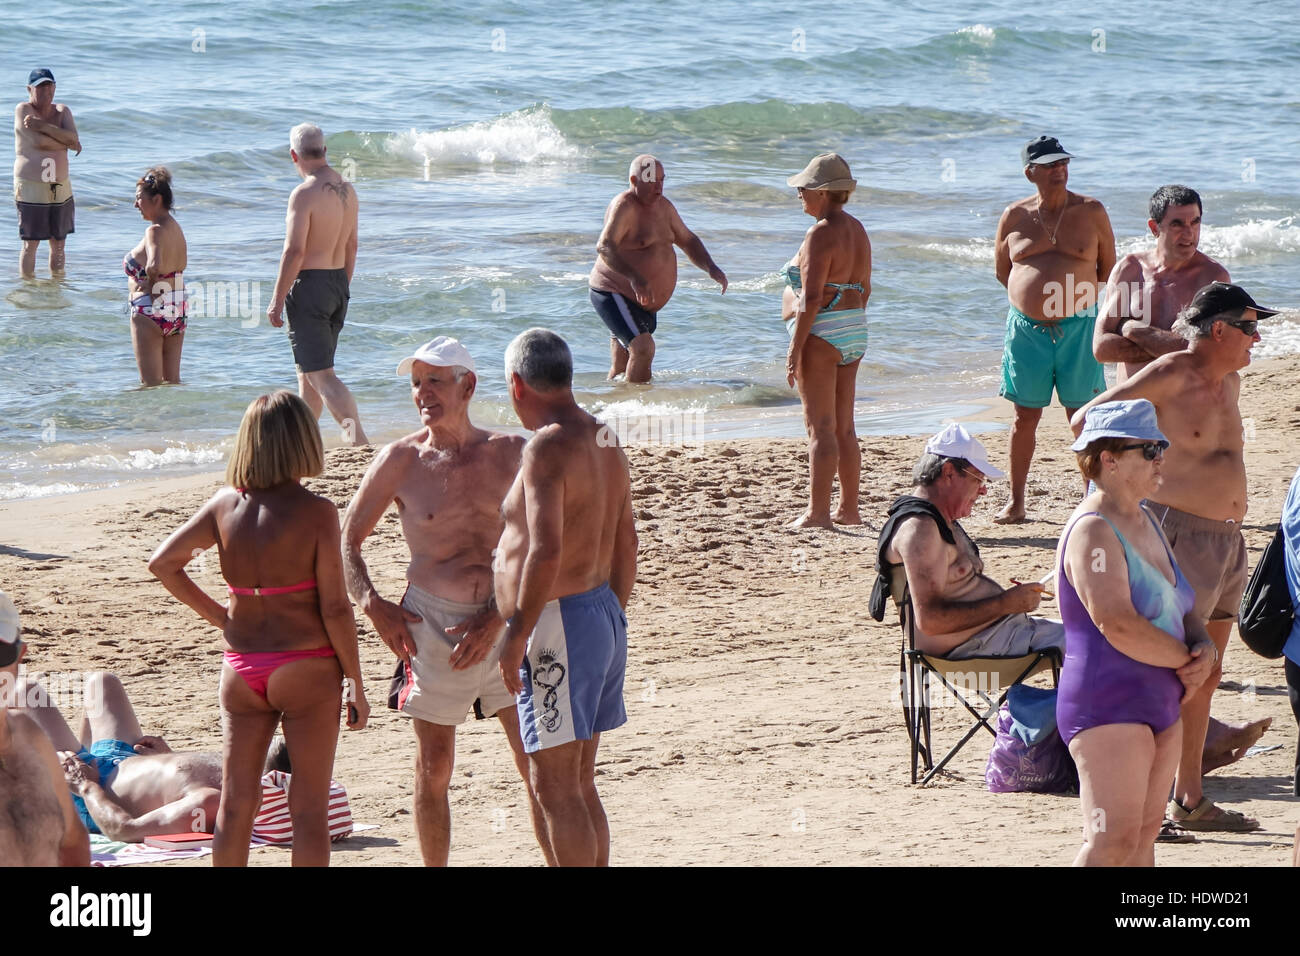 e6dc62a66a98fd Beach Men Thong Stock Photos   Beach Men Thong Stock Images - Alamy